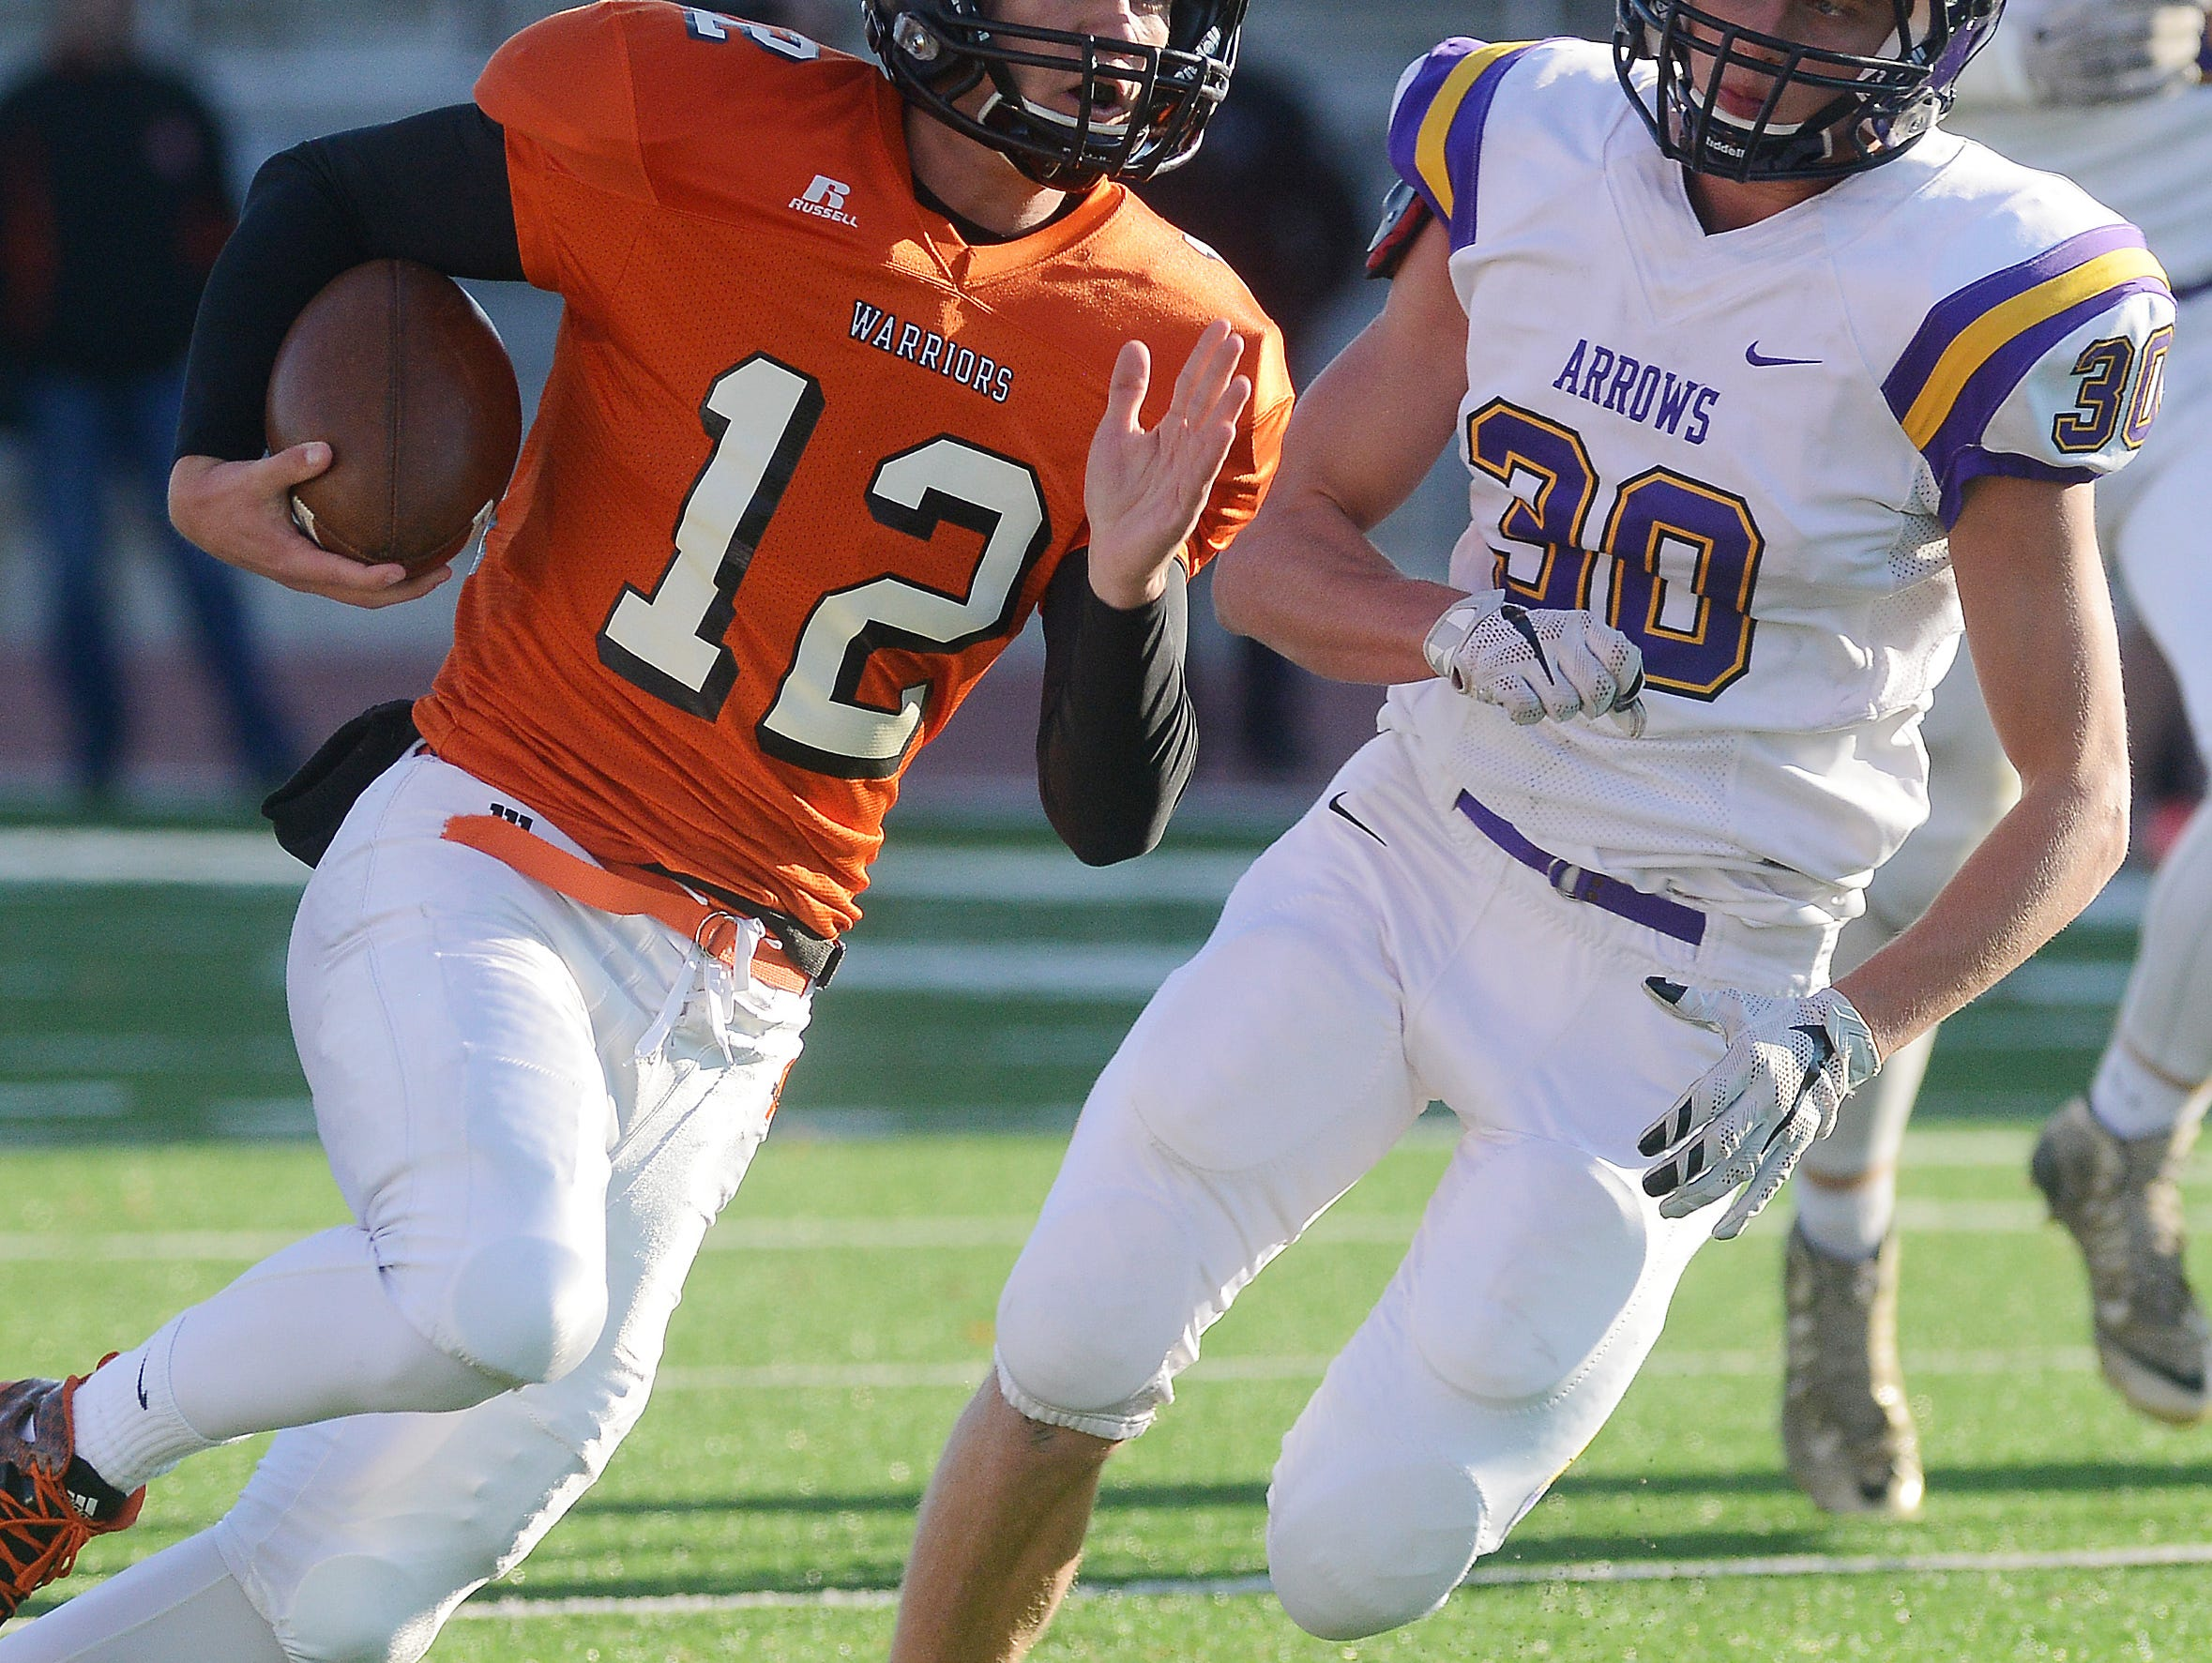 Washington quarterback, Jack Schelhaas carries the ball with Watertown's Parker Schulz on his heels in a class 11AAA football quarterfinal Thursday night at Howard Wood Field, Oct 29, 2015.